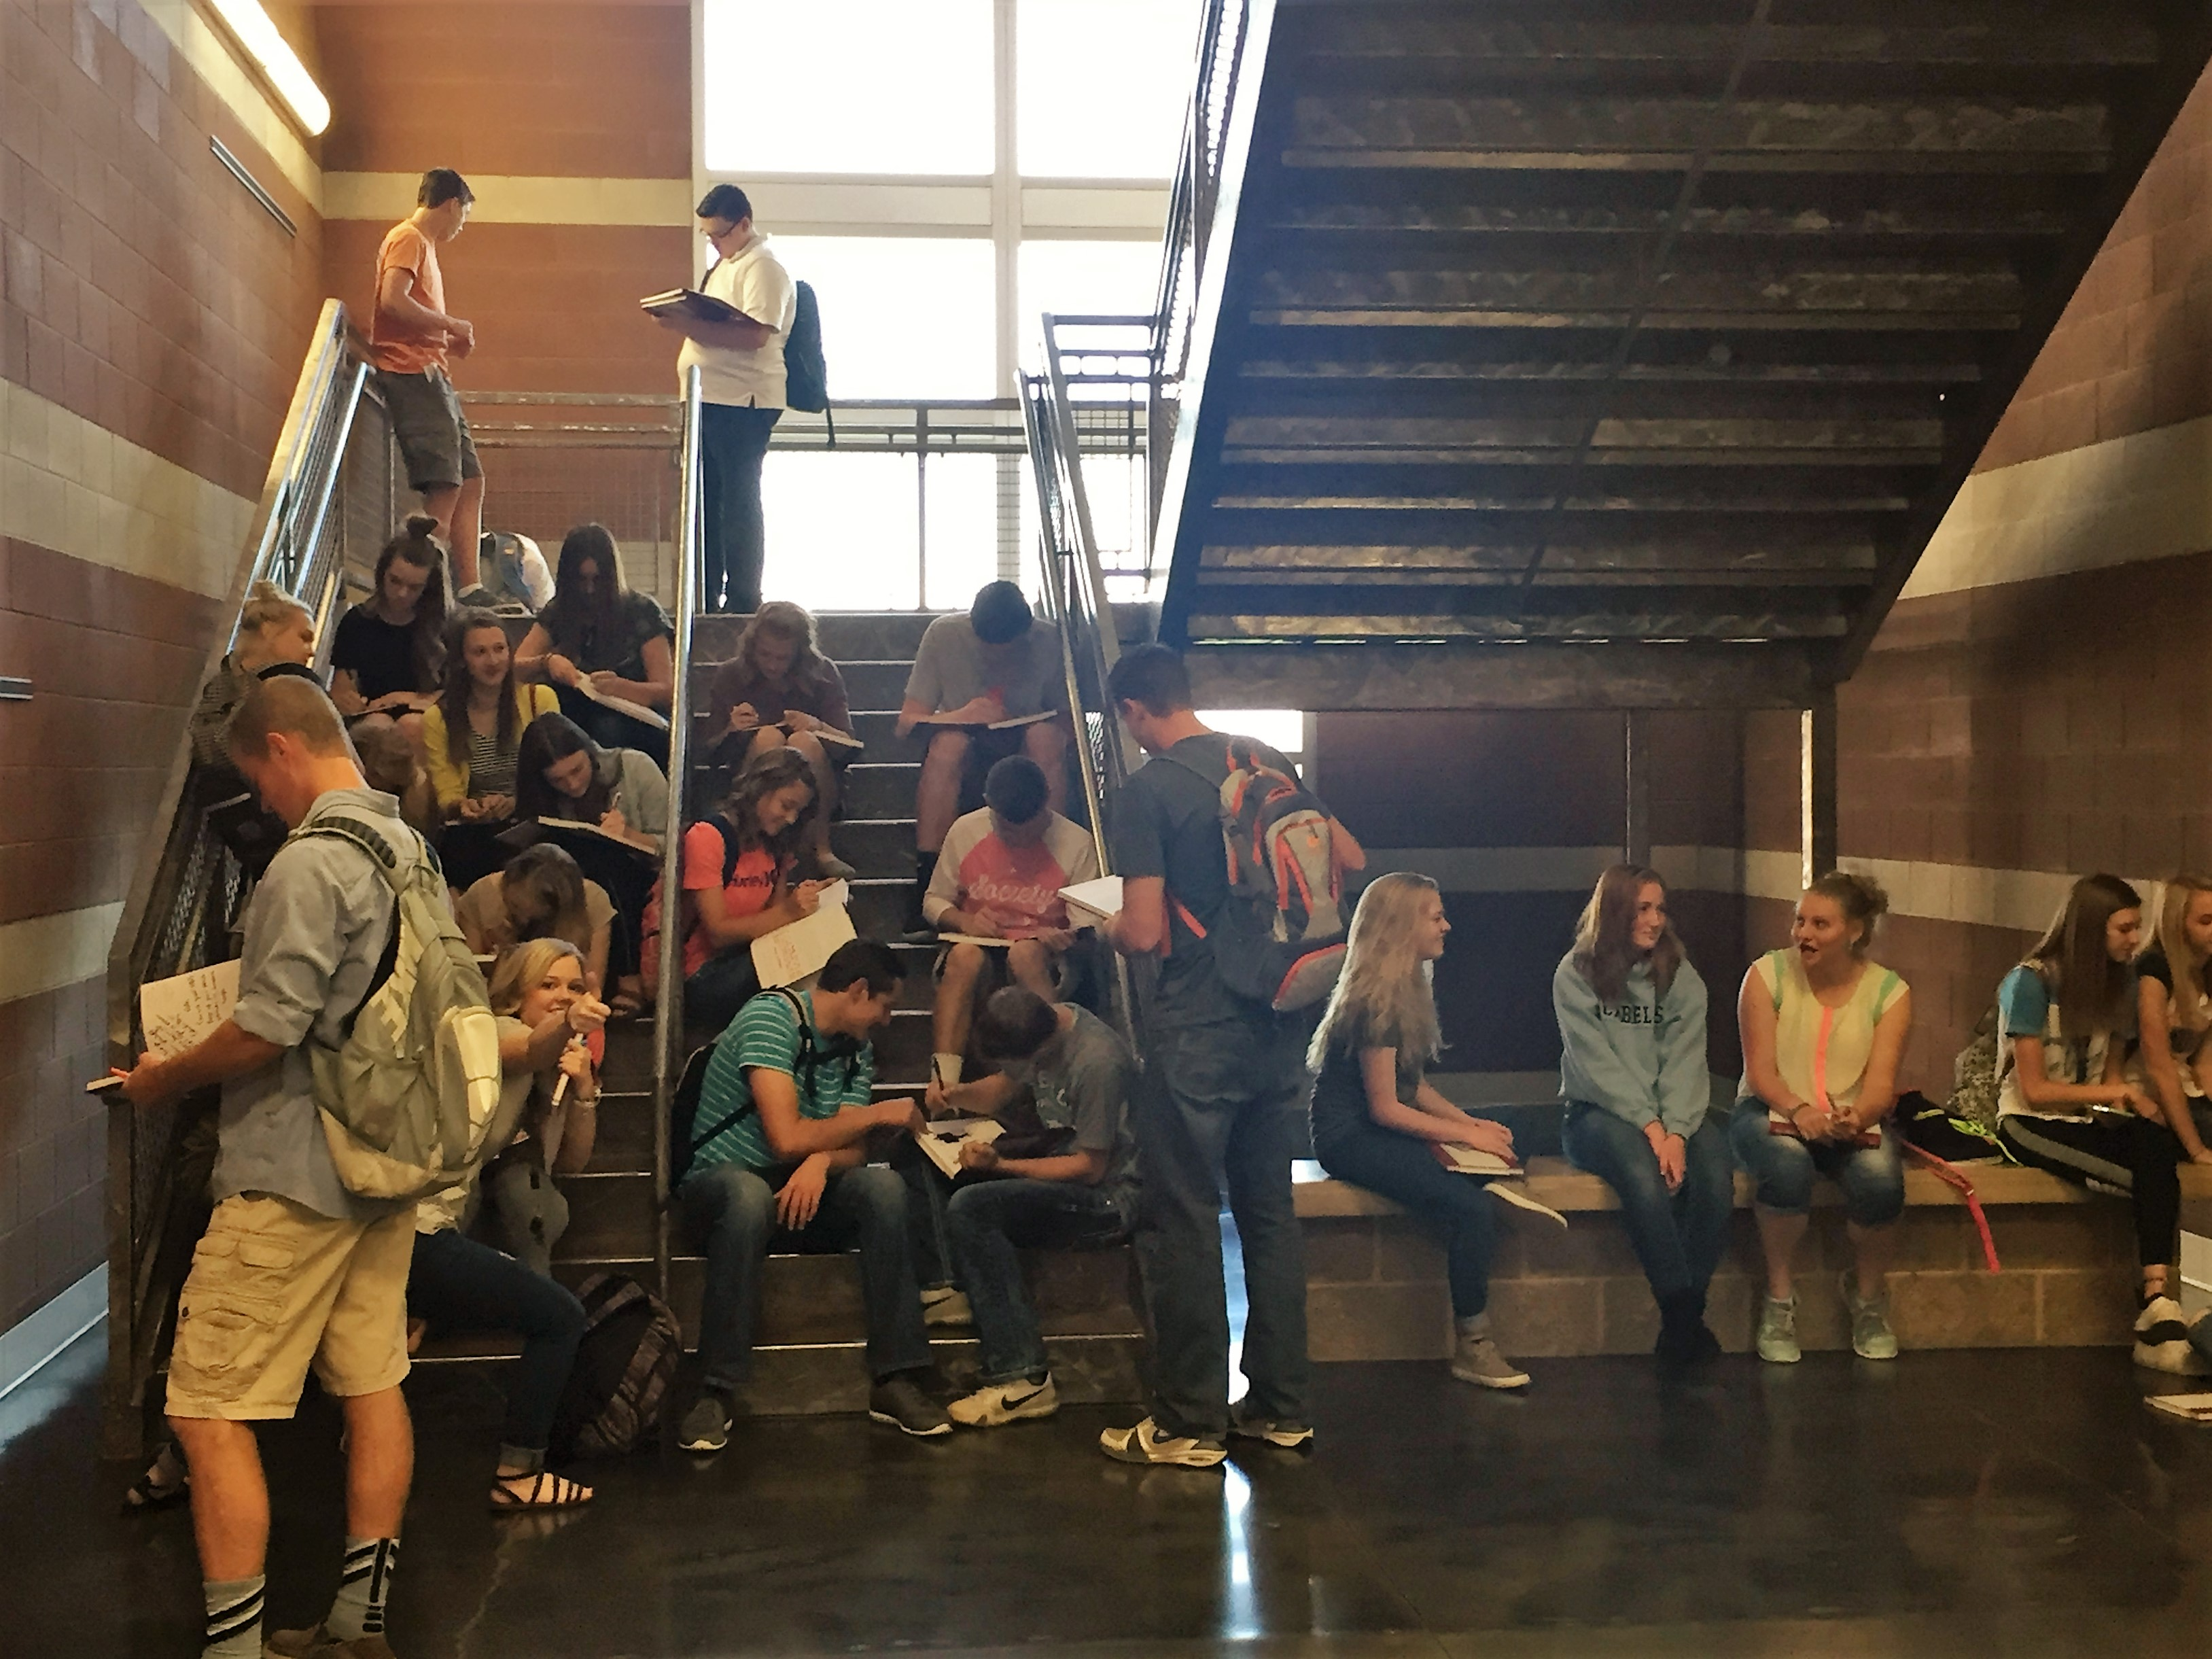 What happens on the last day of school when the seniors are gone? Sophomores and Juniors take over the stair case to sign yearbooks. So long to the class of 2016, here comes 2017!